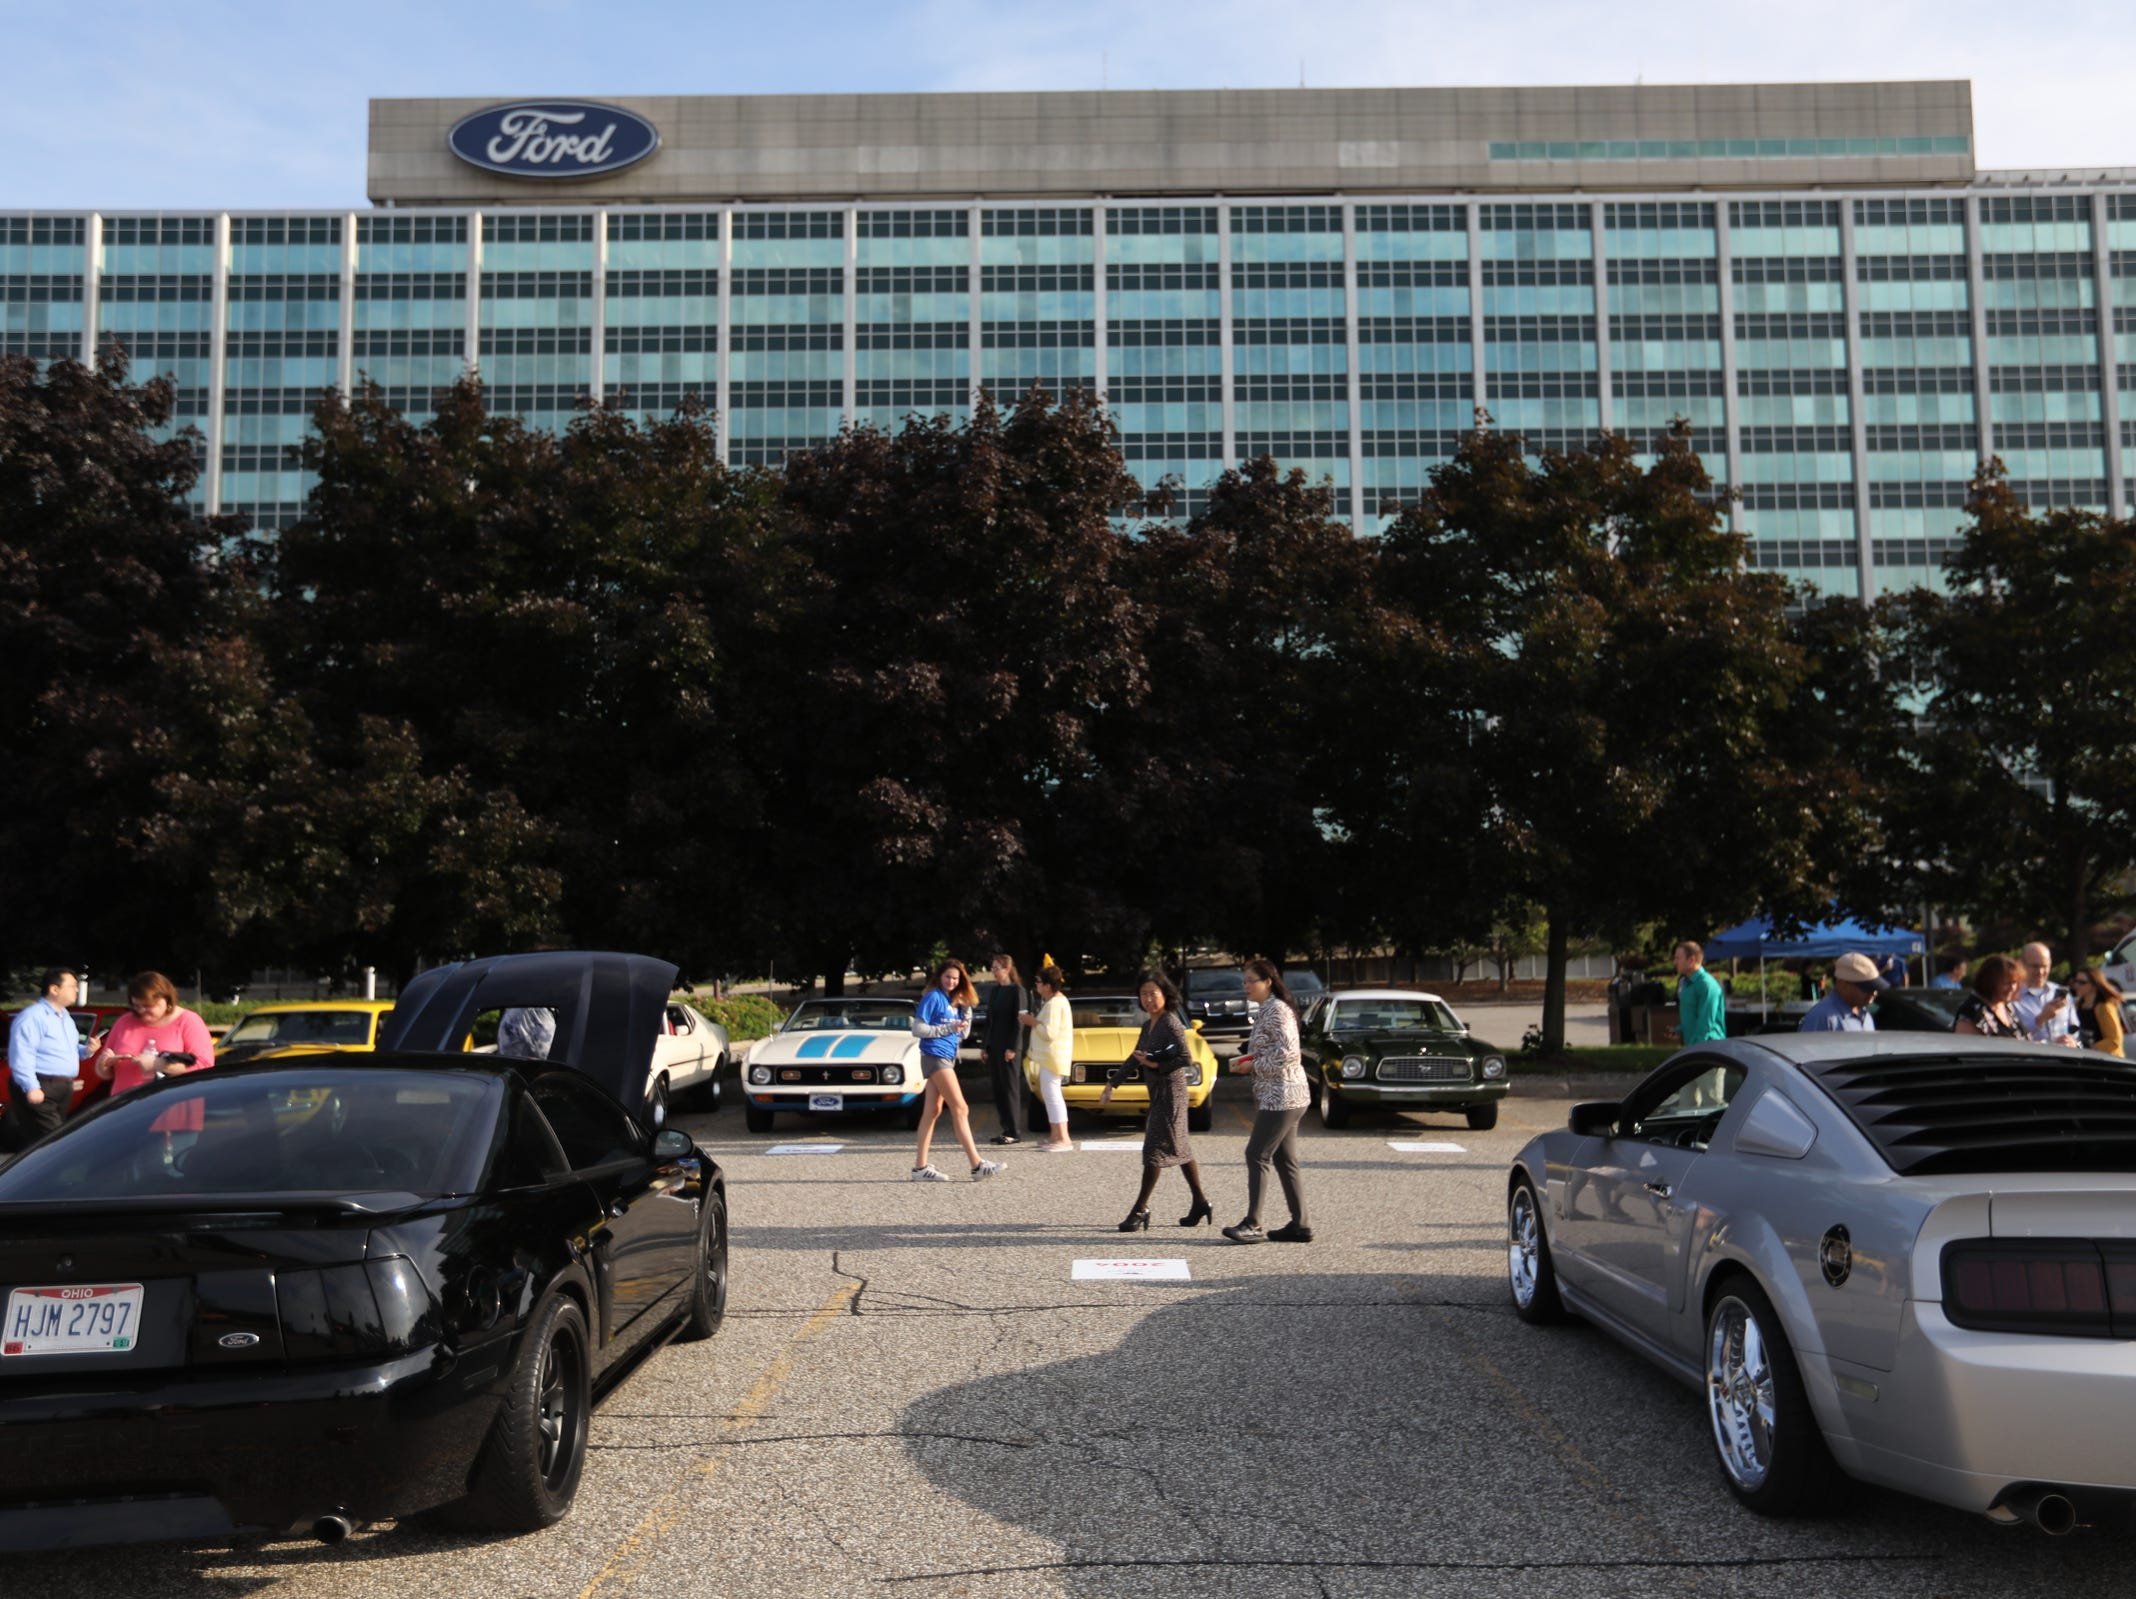 Ford Motor Company held an event celebrating the 10,000,000 Mustang built at the Ford Motor Company World Headquarters in Dearborn on Wed., Aug 8, 2018.